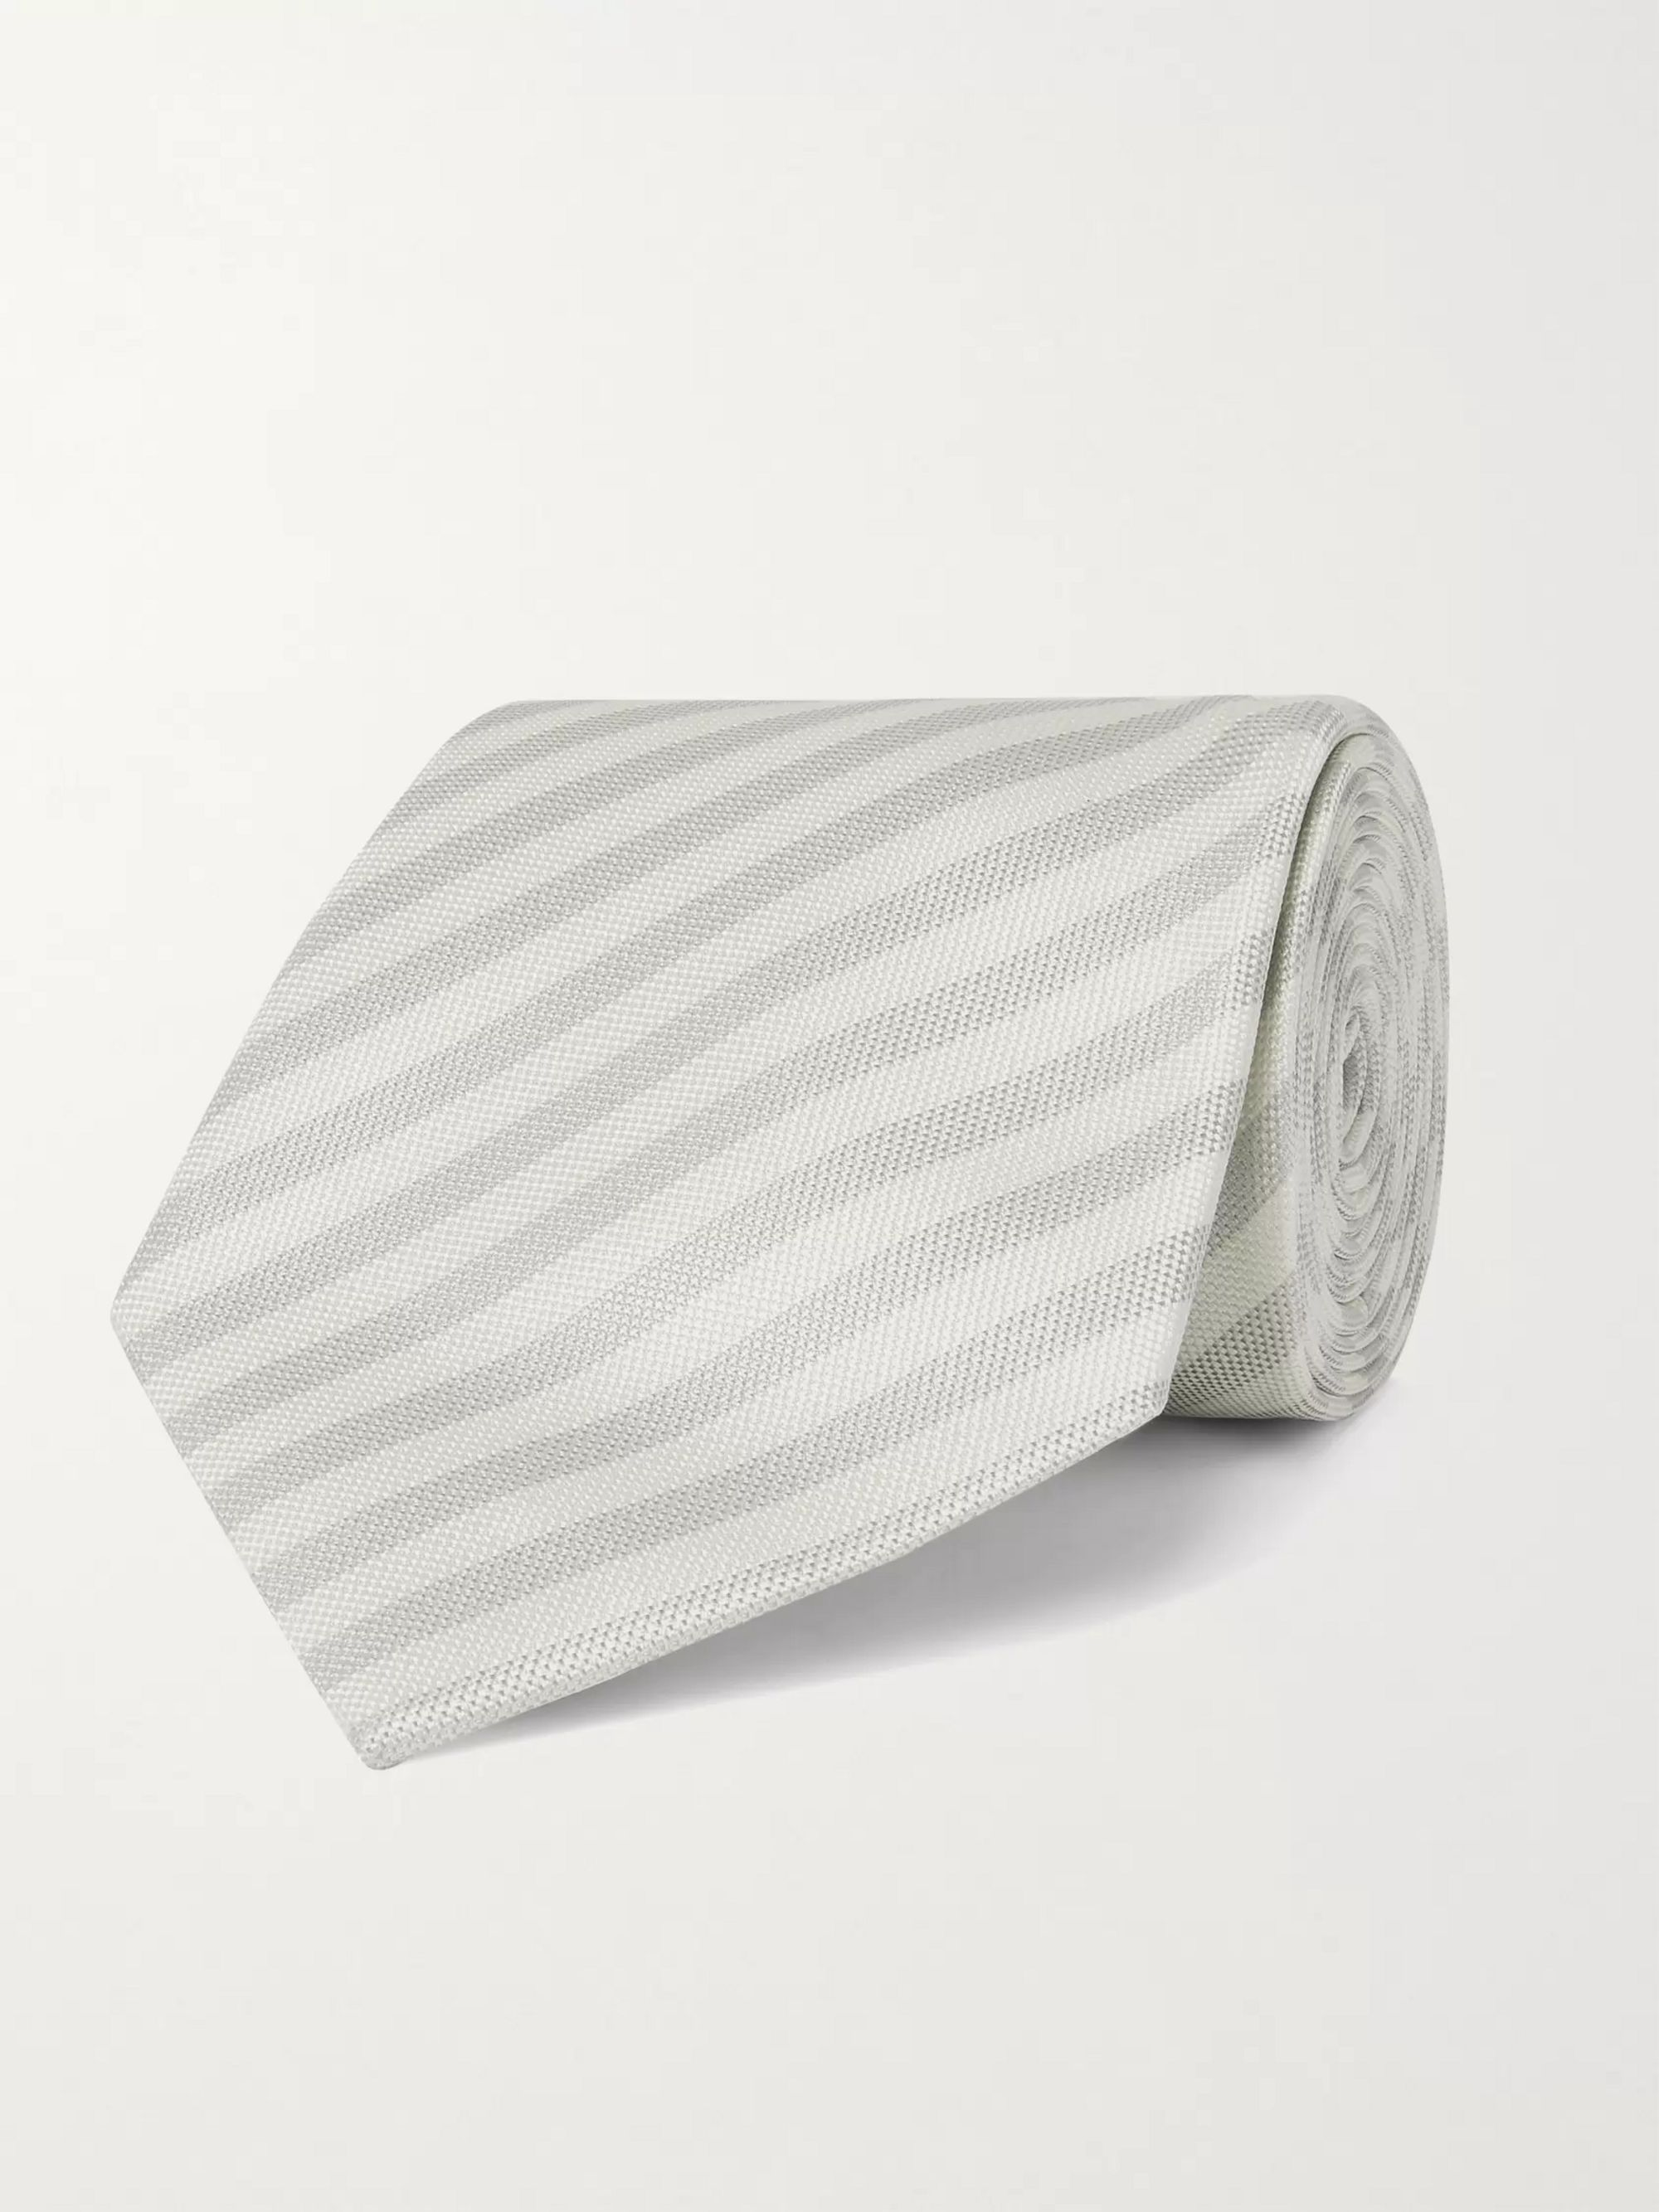 폴 스미스 Paul Smith 8cm Striped Silk Tie,Light gray